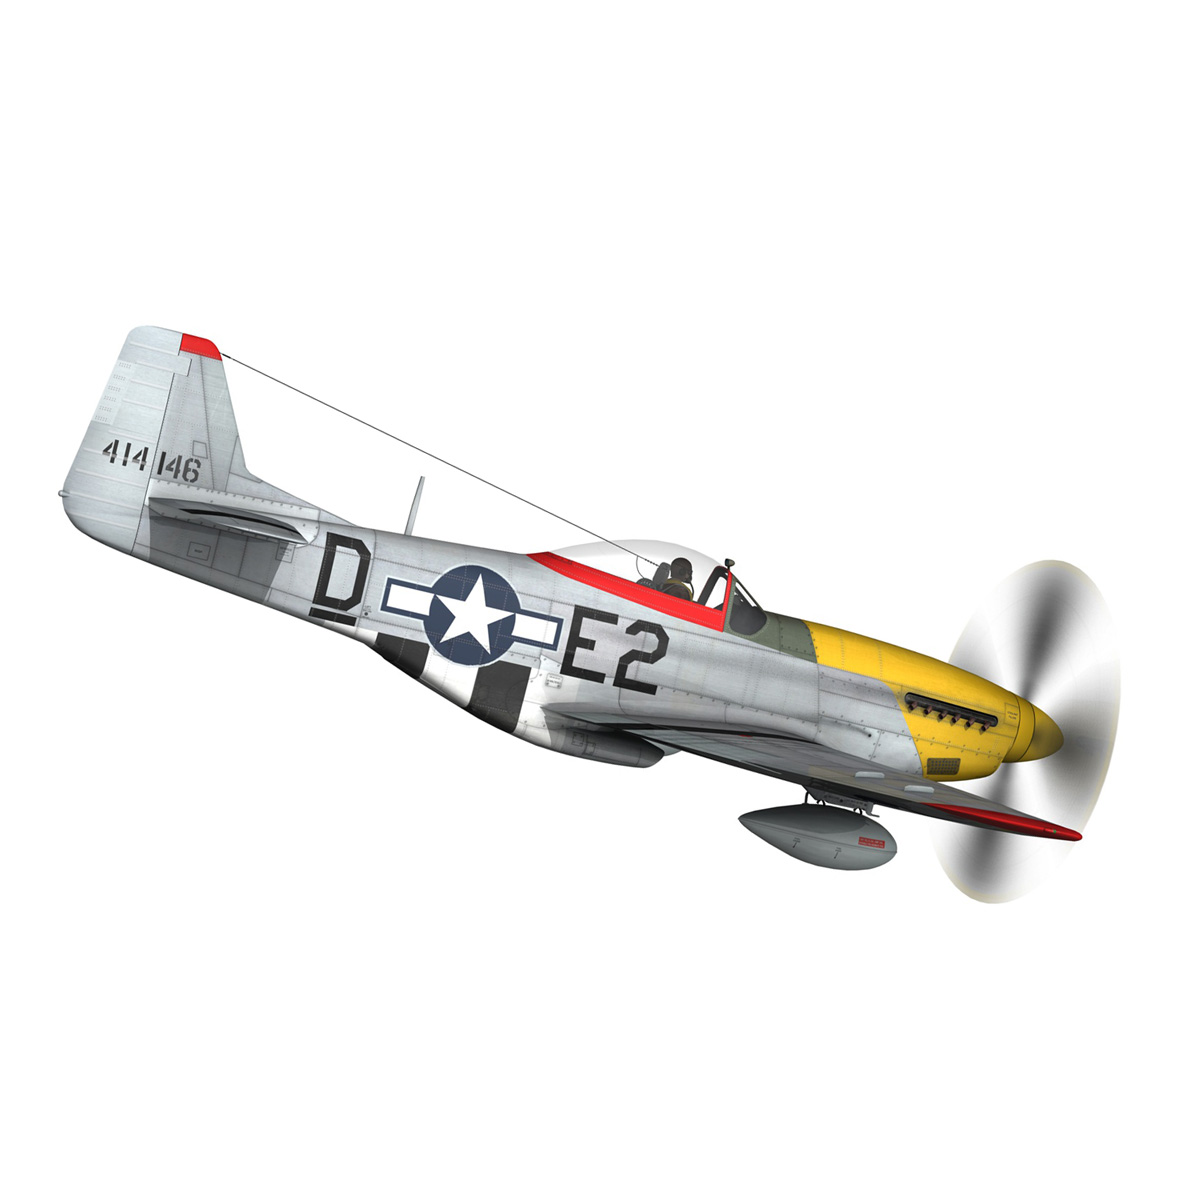 north american p-51d – mustang – detroit miss 3d model 3ds fbx c4d lwo obj 267597